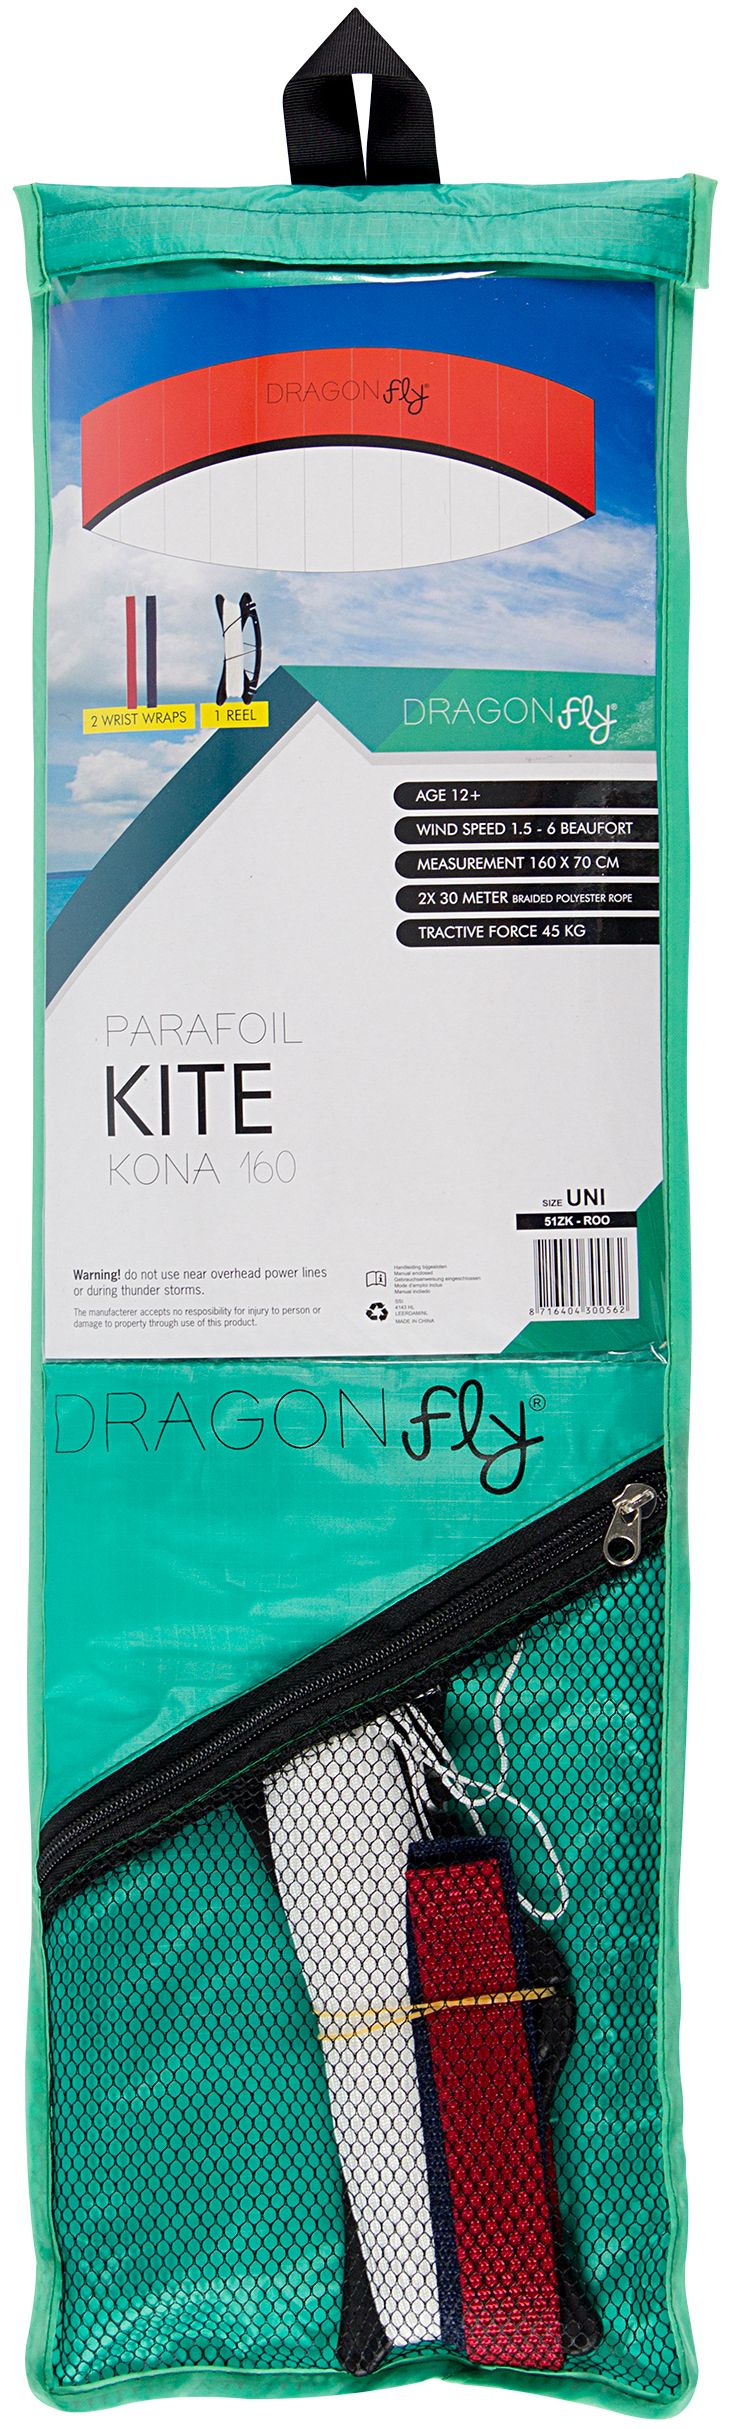 Zmeu Kite Dragon Fly  Kona 160